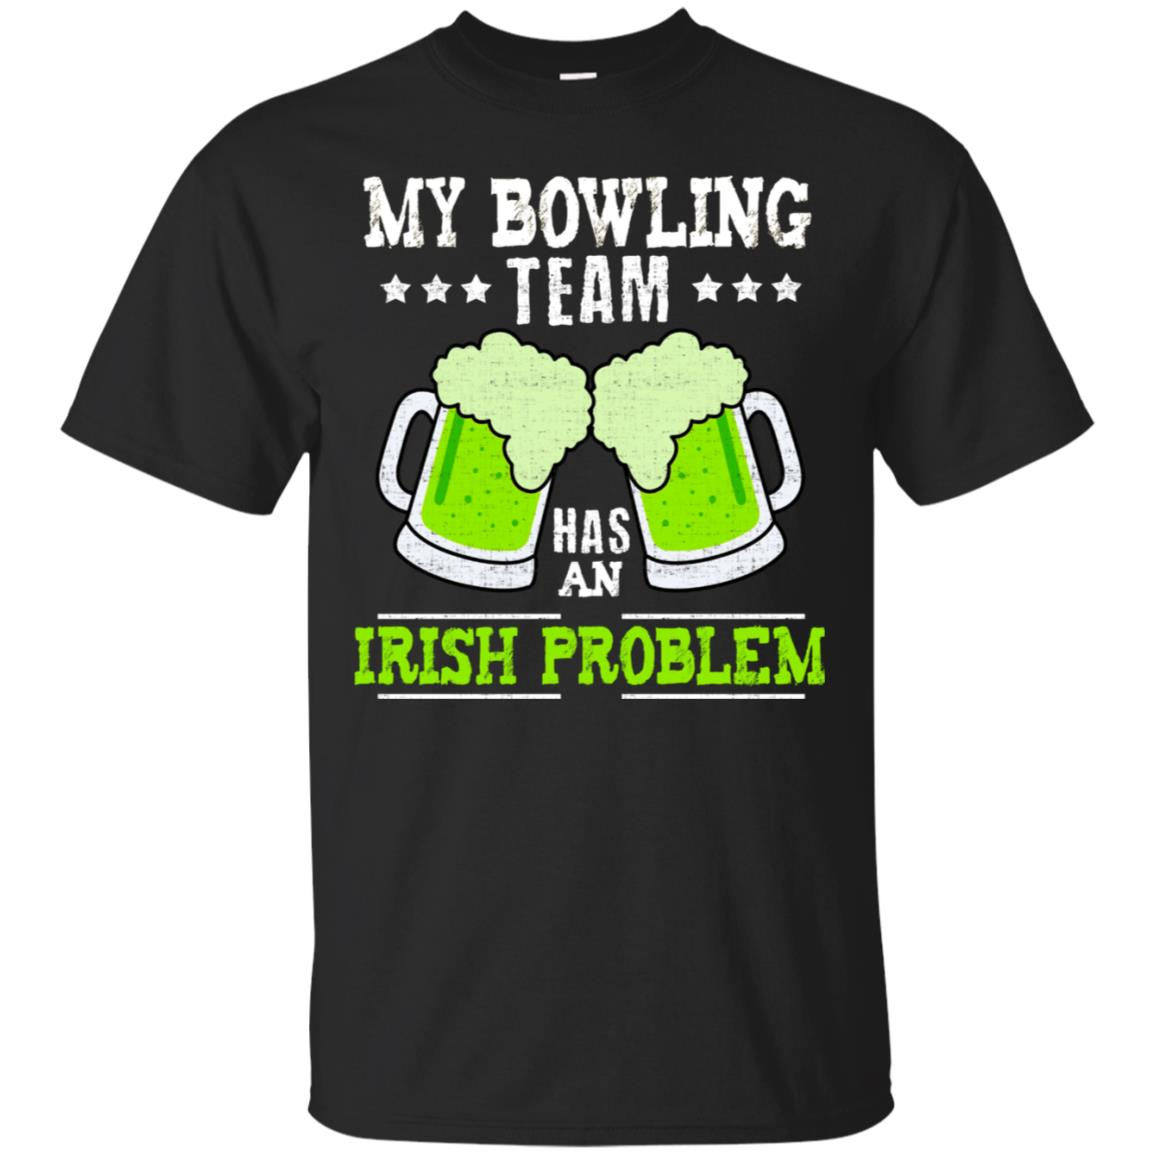 My Bowling Team Irish Problem Funny St Patrick's Day Shirt 99promocode